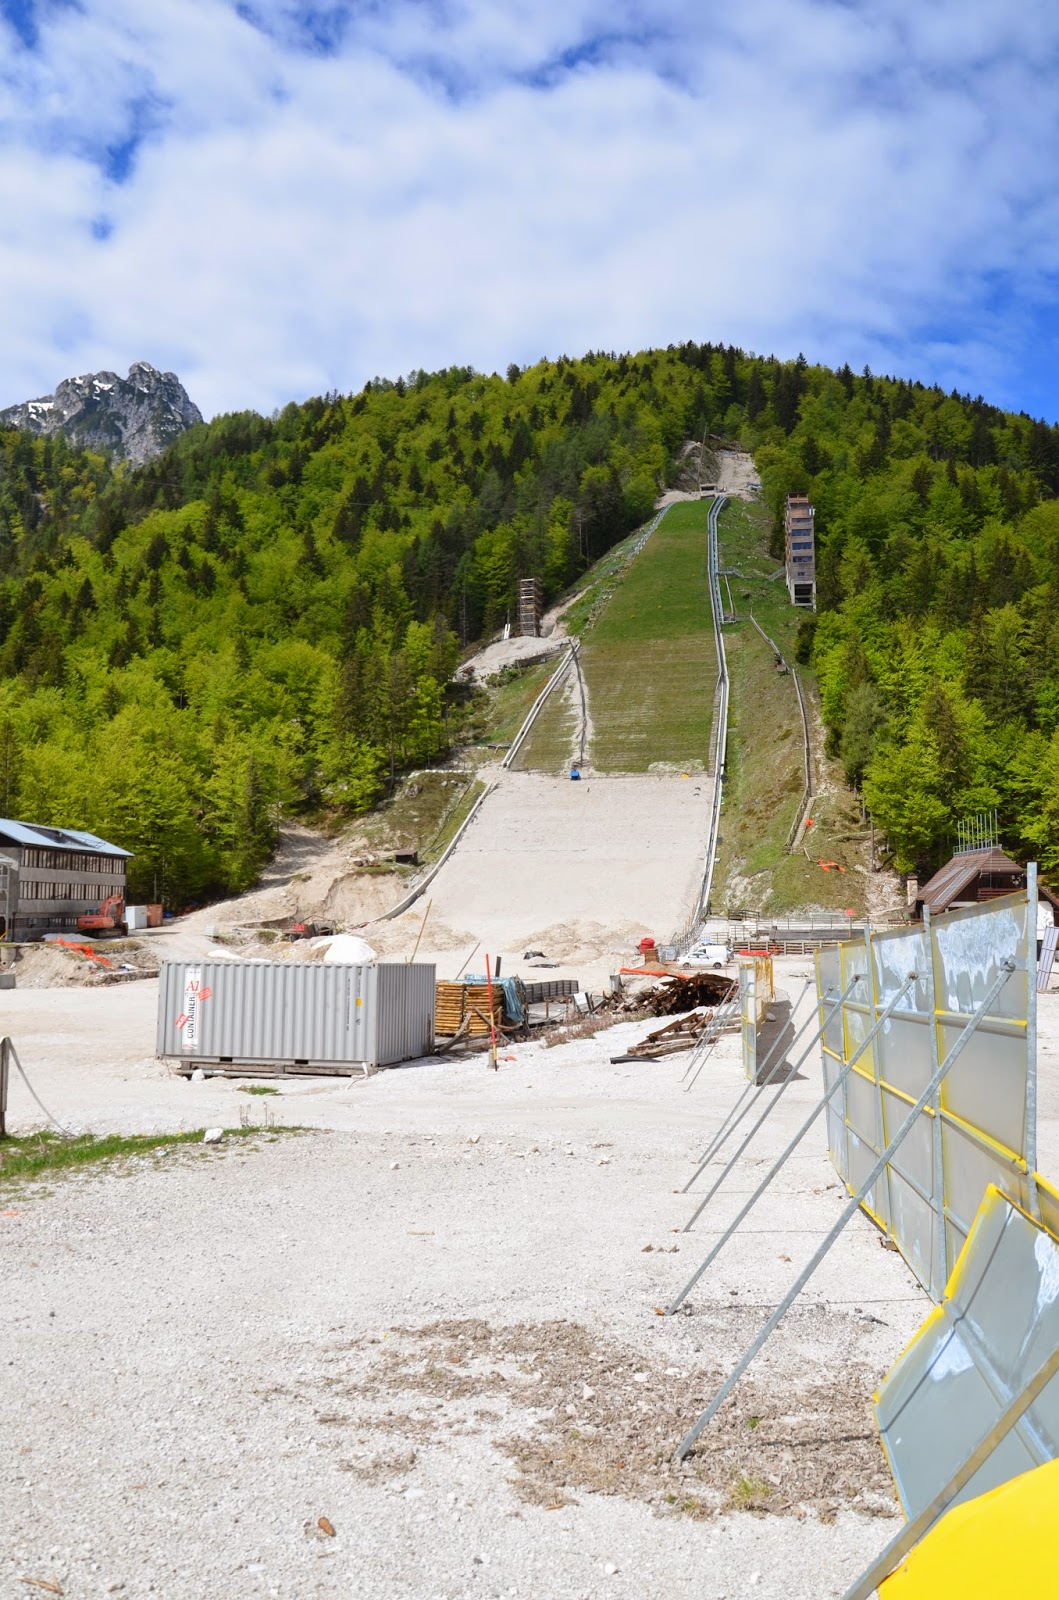 Planica Ski Jump Center construction site